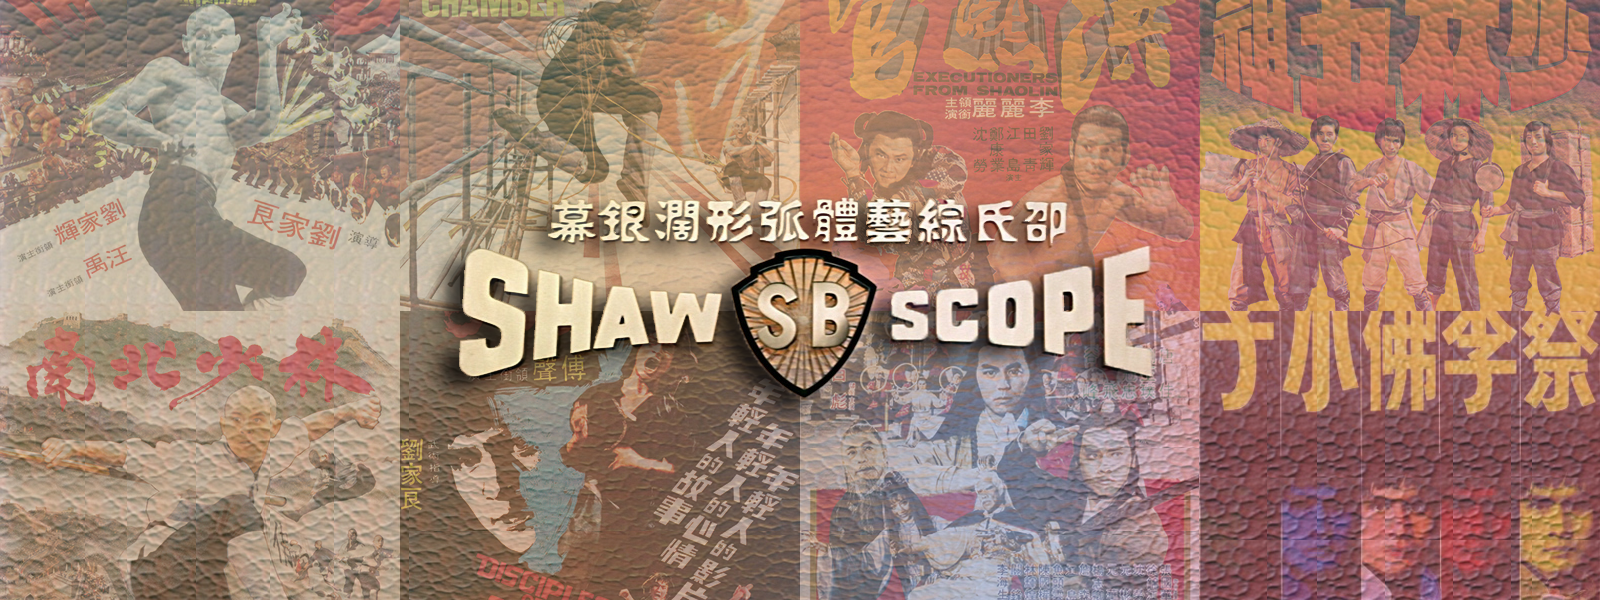 Shaw Brothers Spectaculars